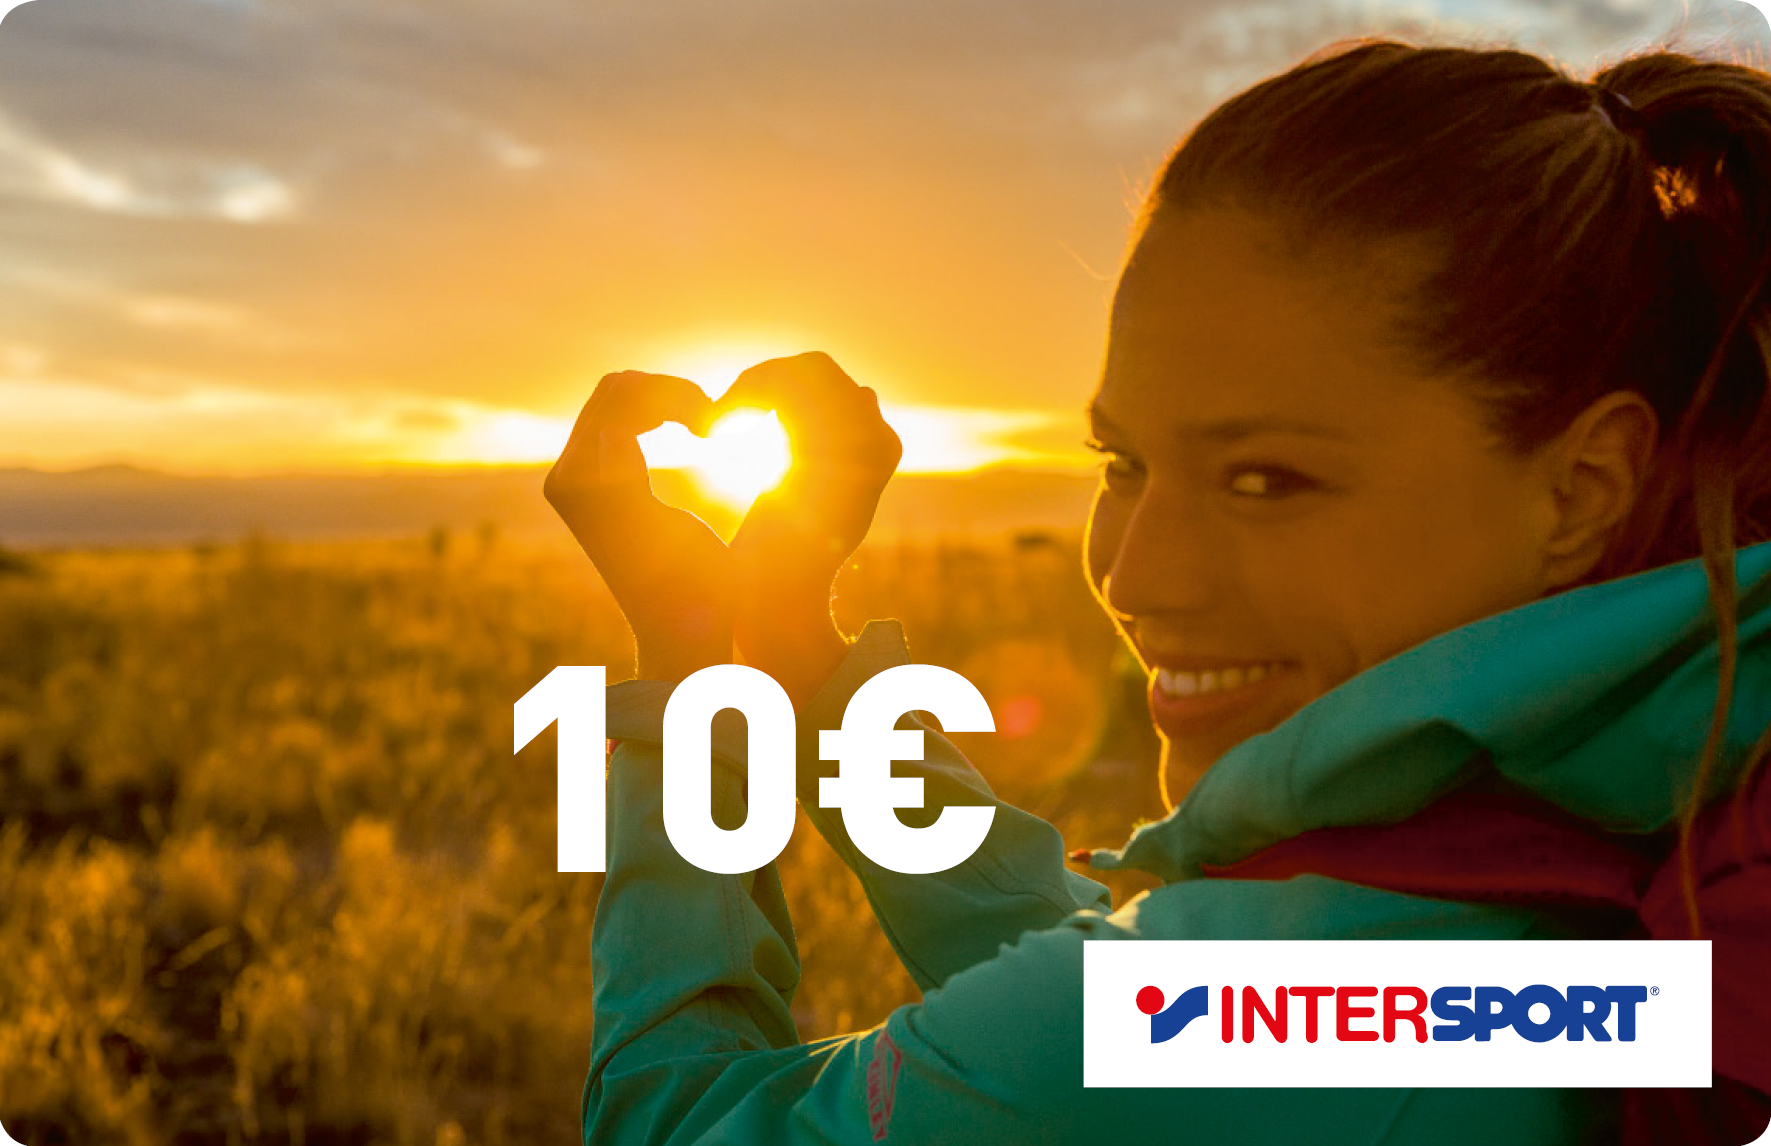 INTERSPORT-Gutscheinkarte